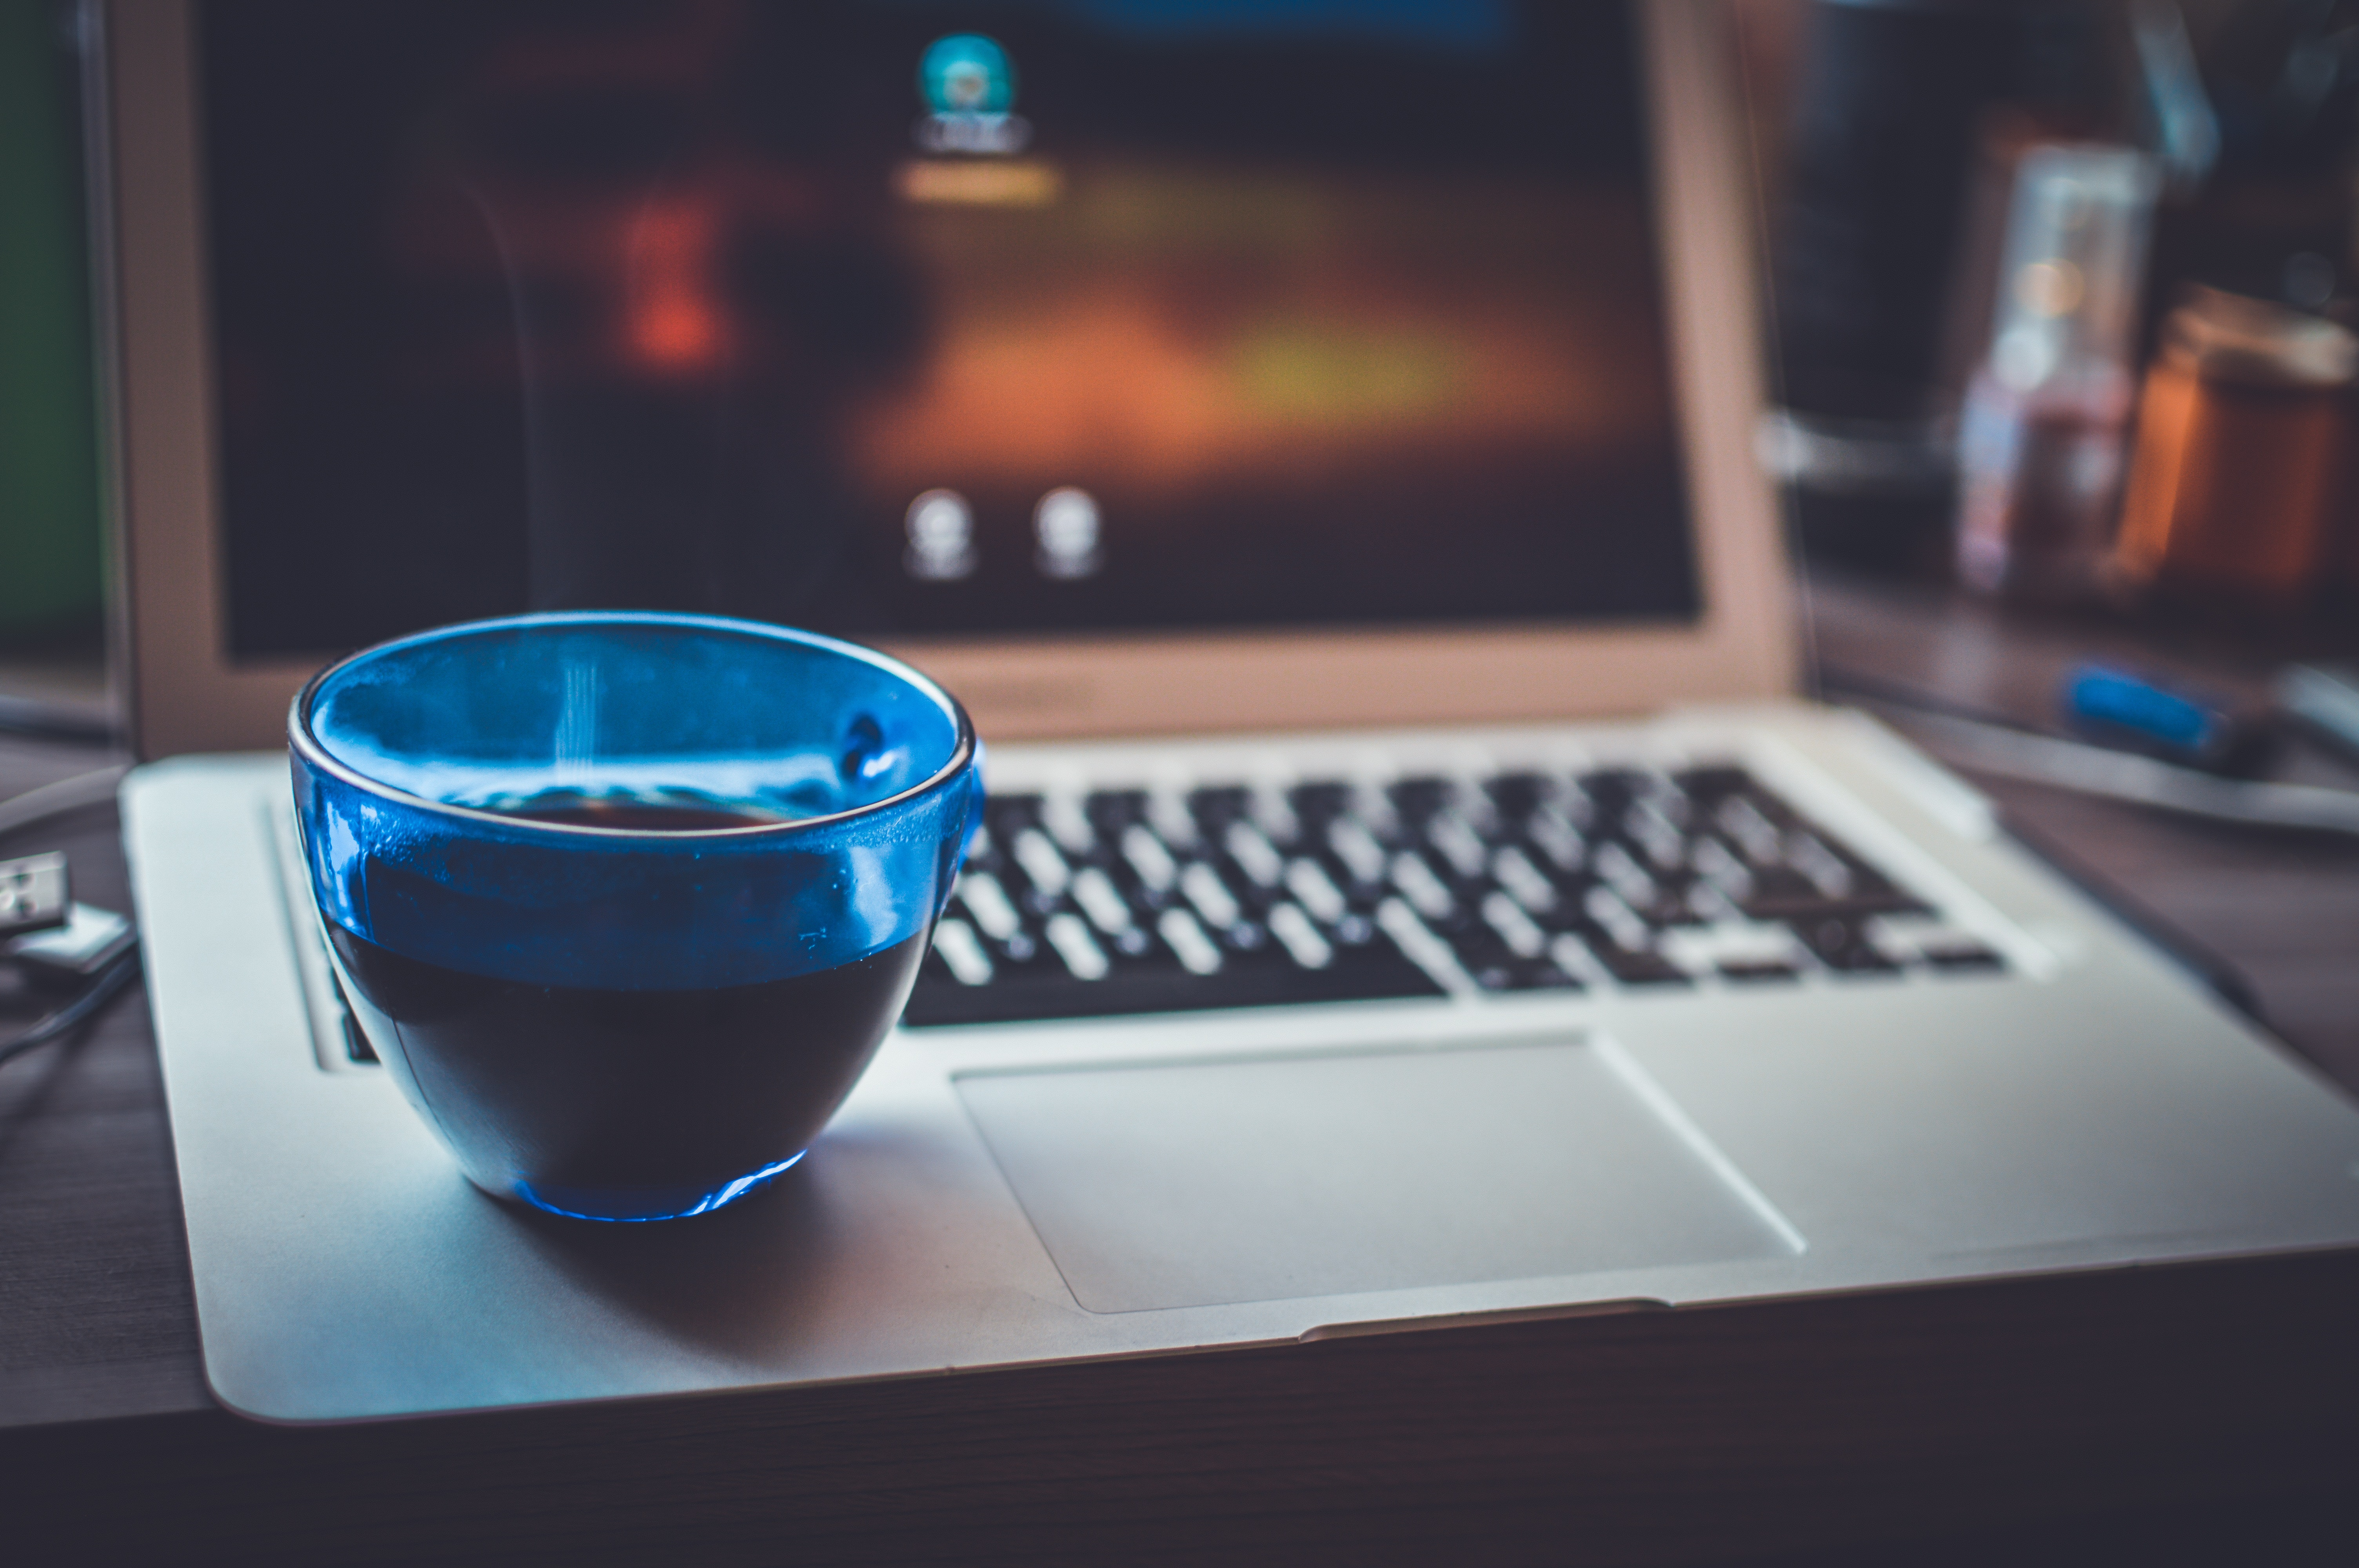 person holding white ceramic teacup in front of a macbook